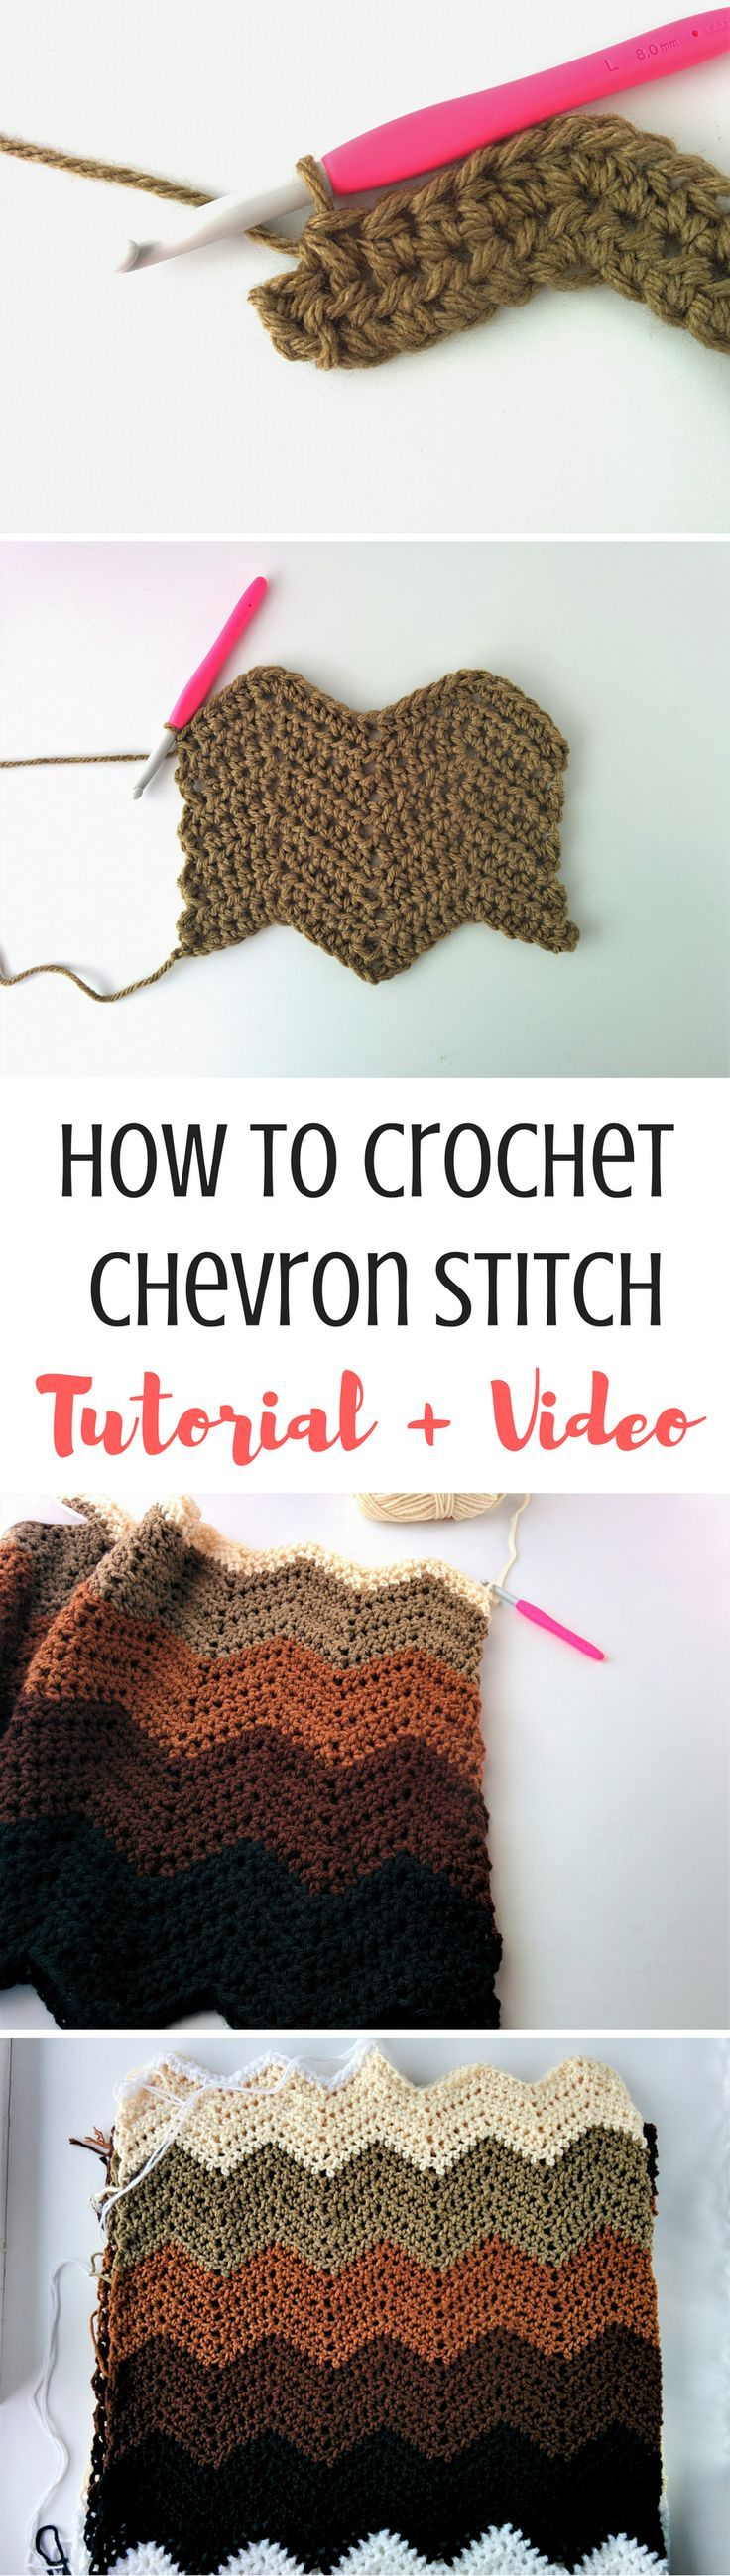 1080 best WAVE CROCHET images on Pinterest | Crochet patterns ...